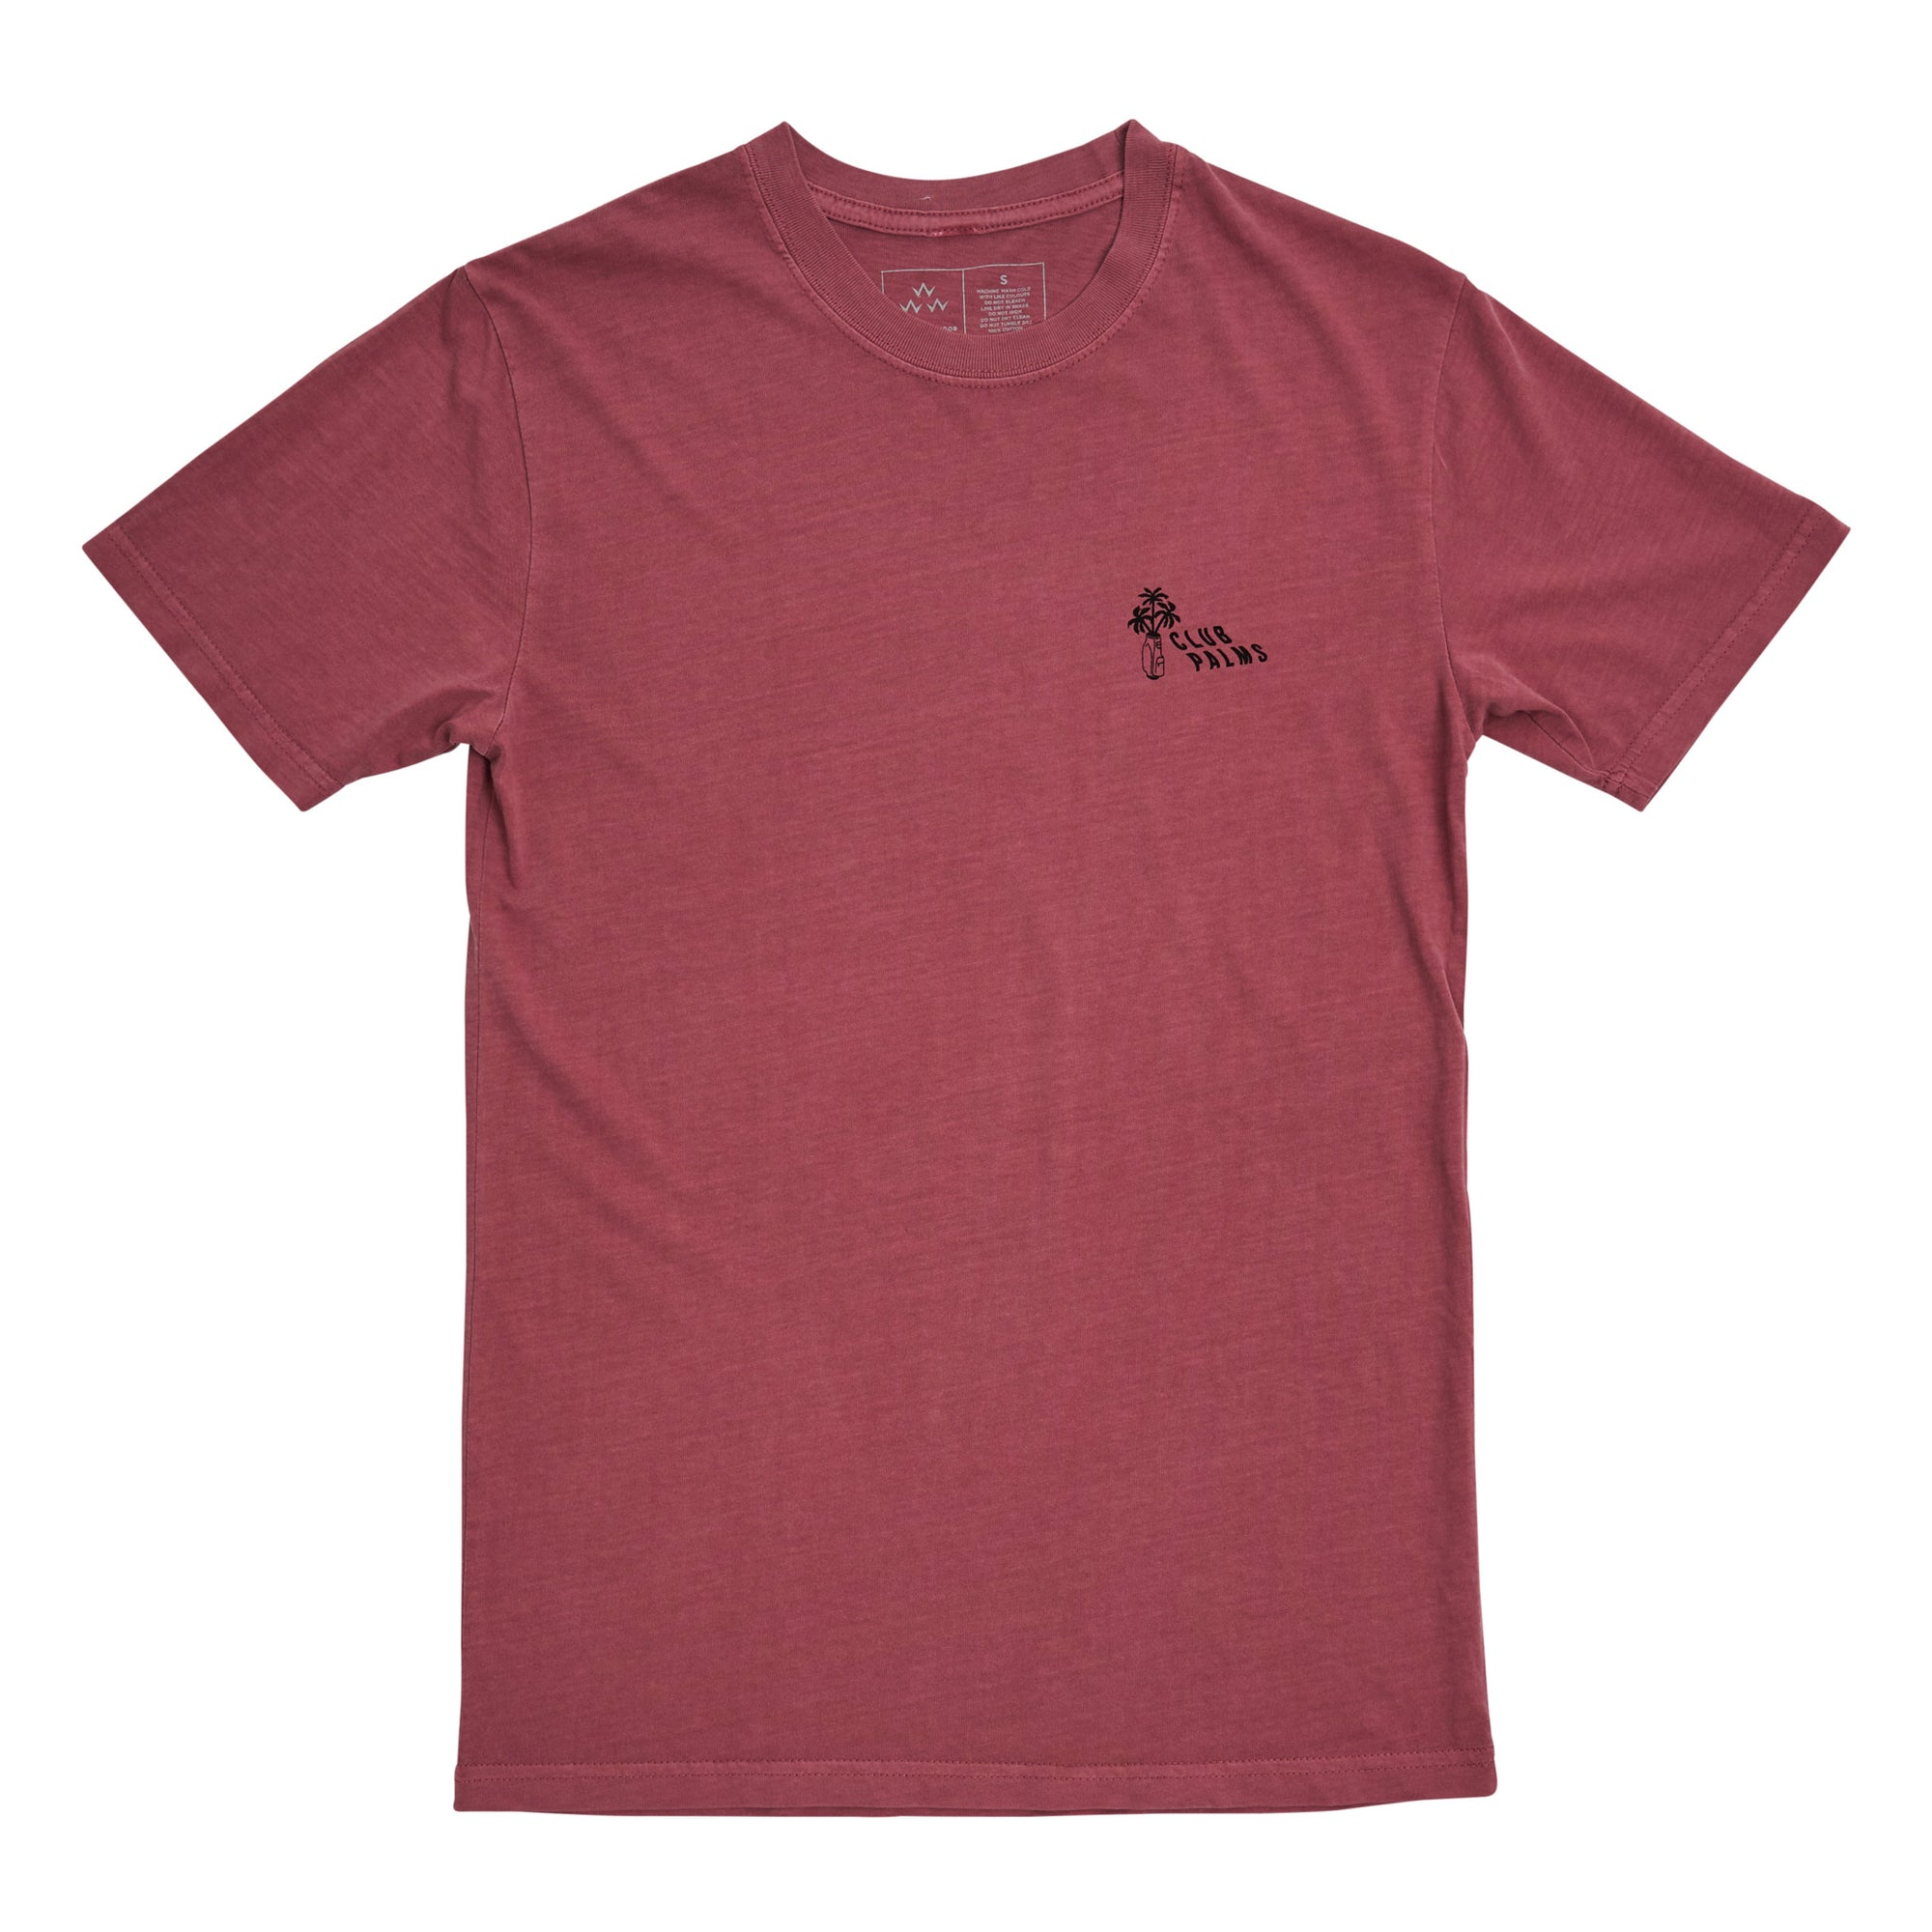 birds-of-condor-wine-burgundy-golf-tee-shirt-club-palms-front